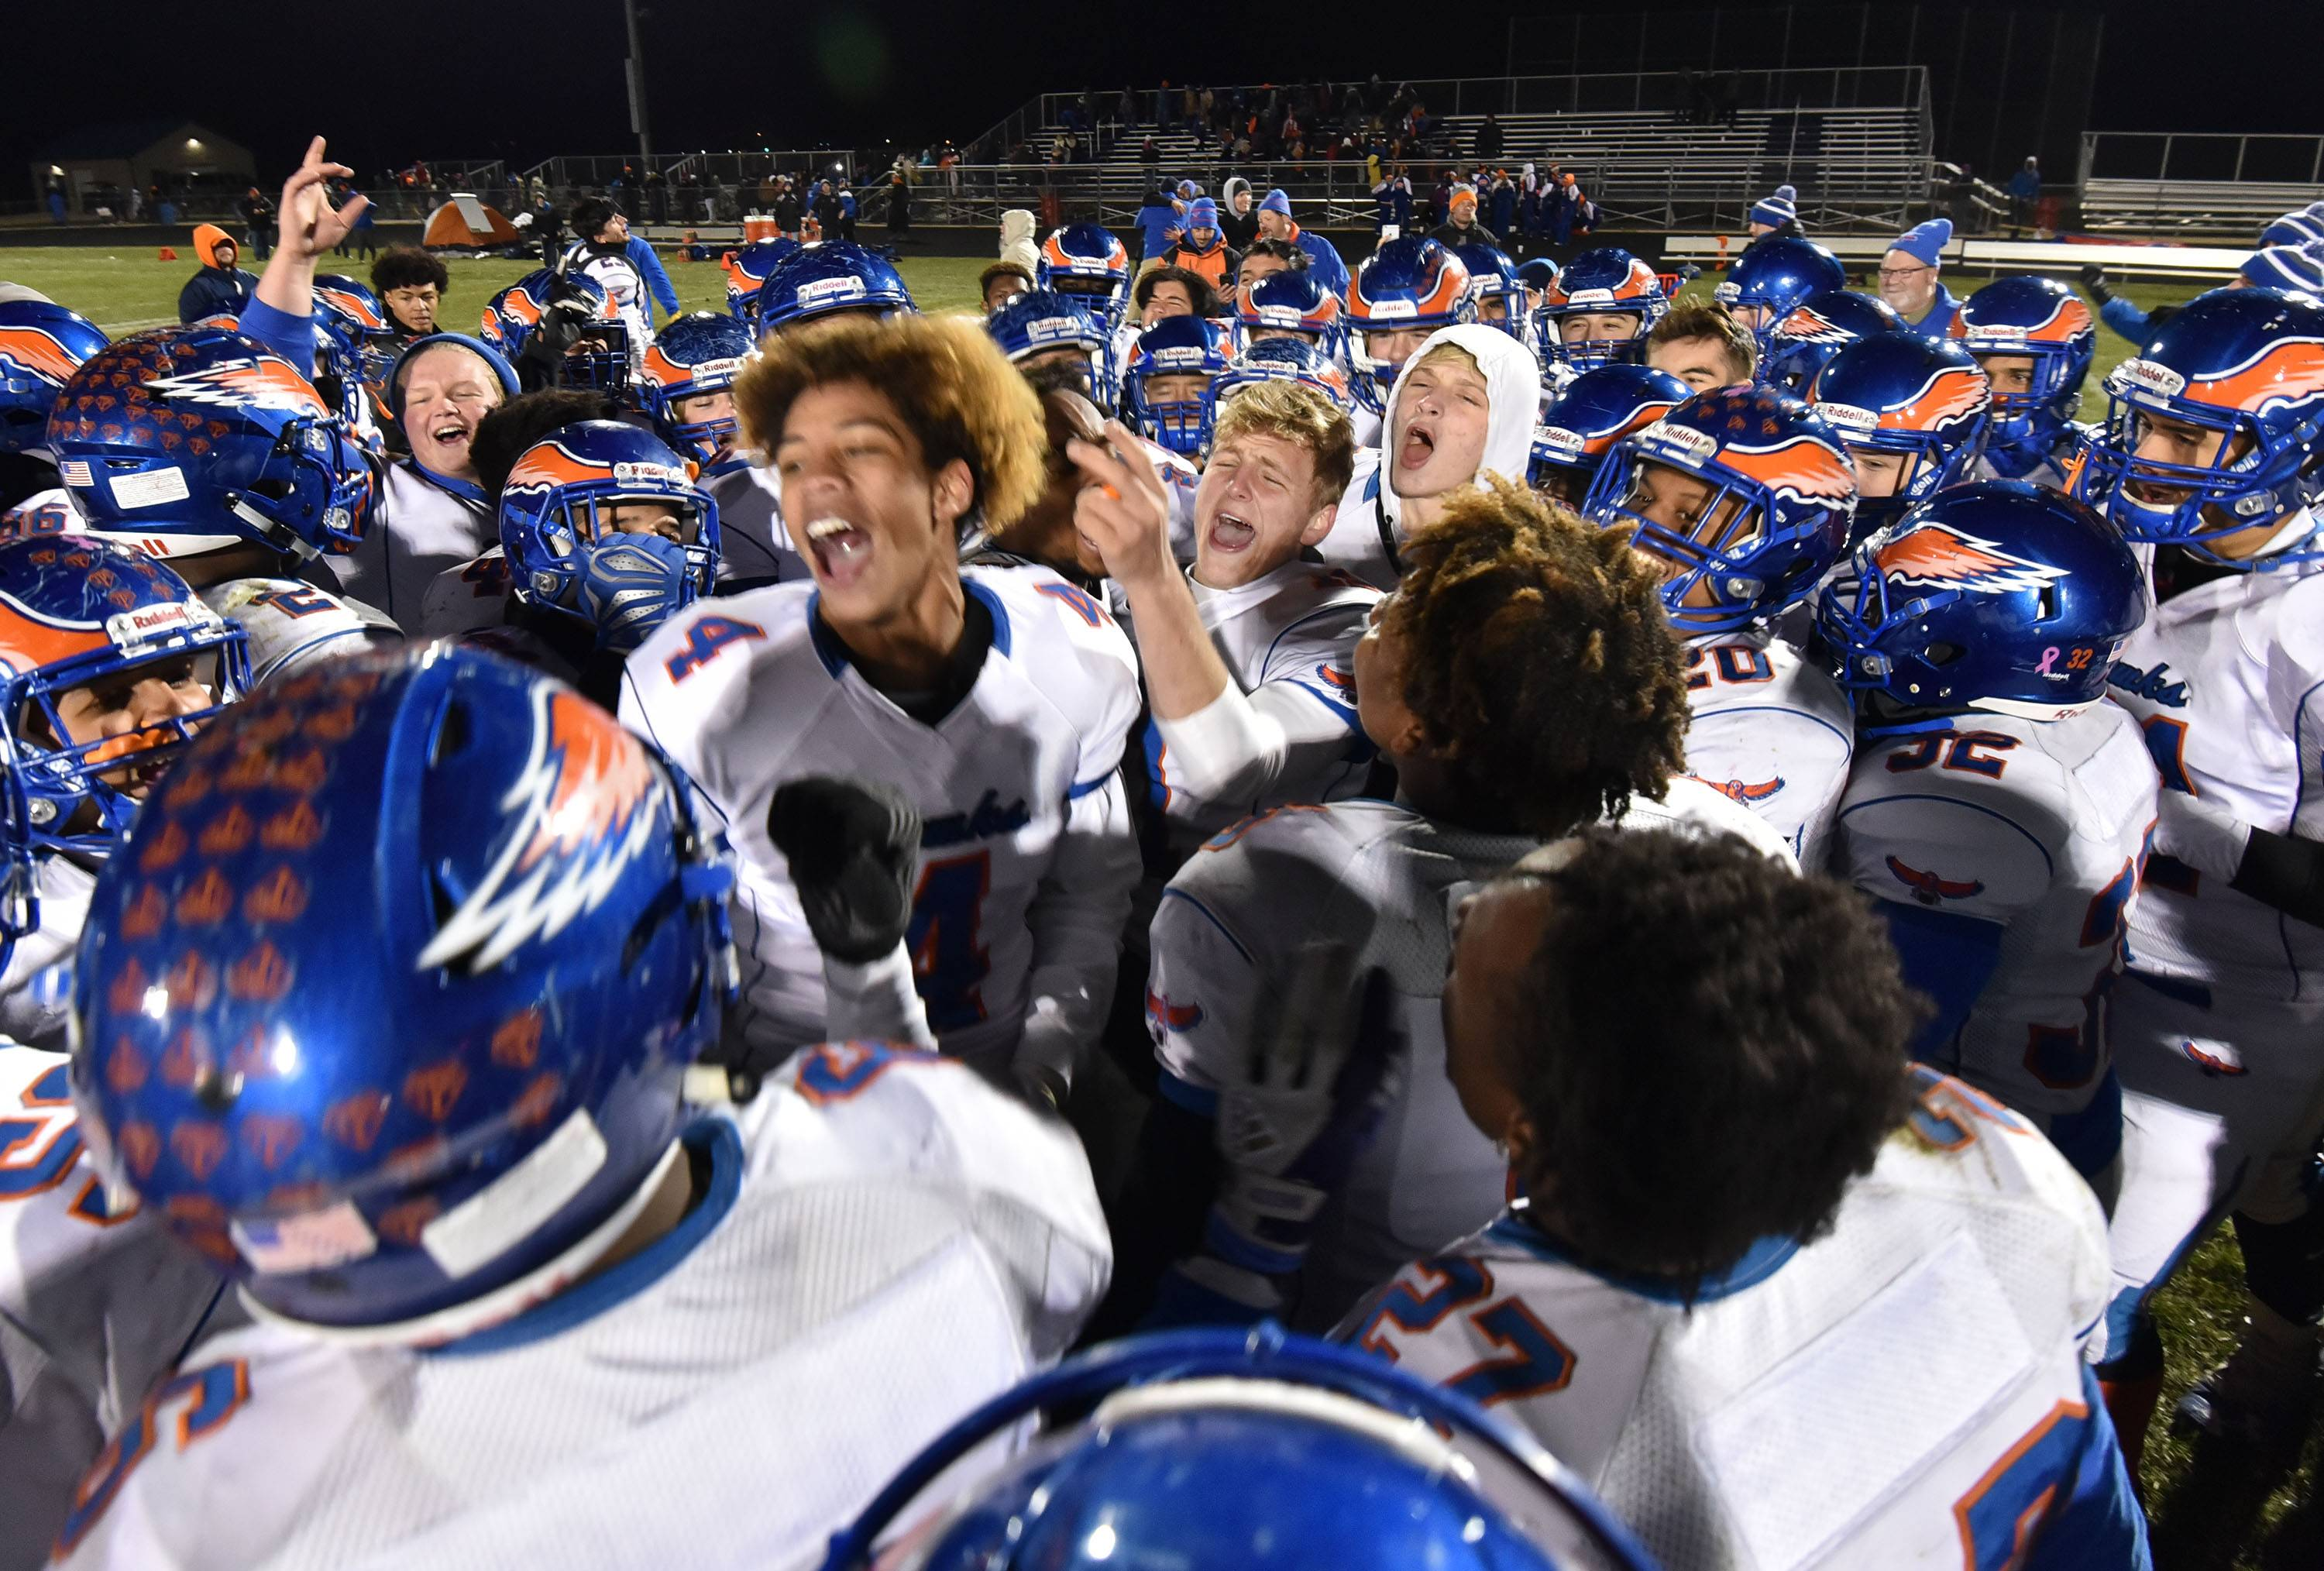 Images: Hoffman Estates vs. Belvidere North, quarterfinal playoff football